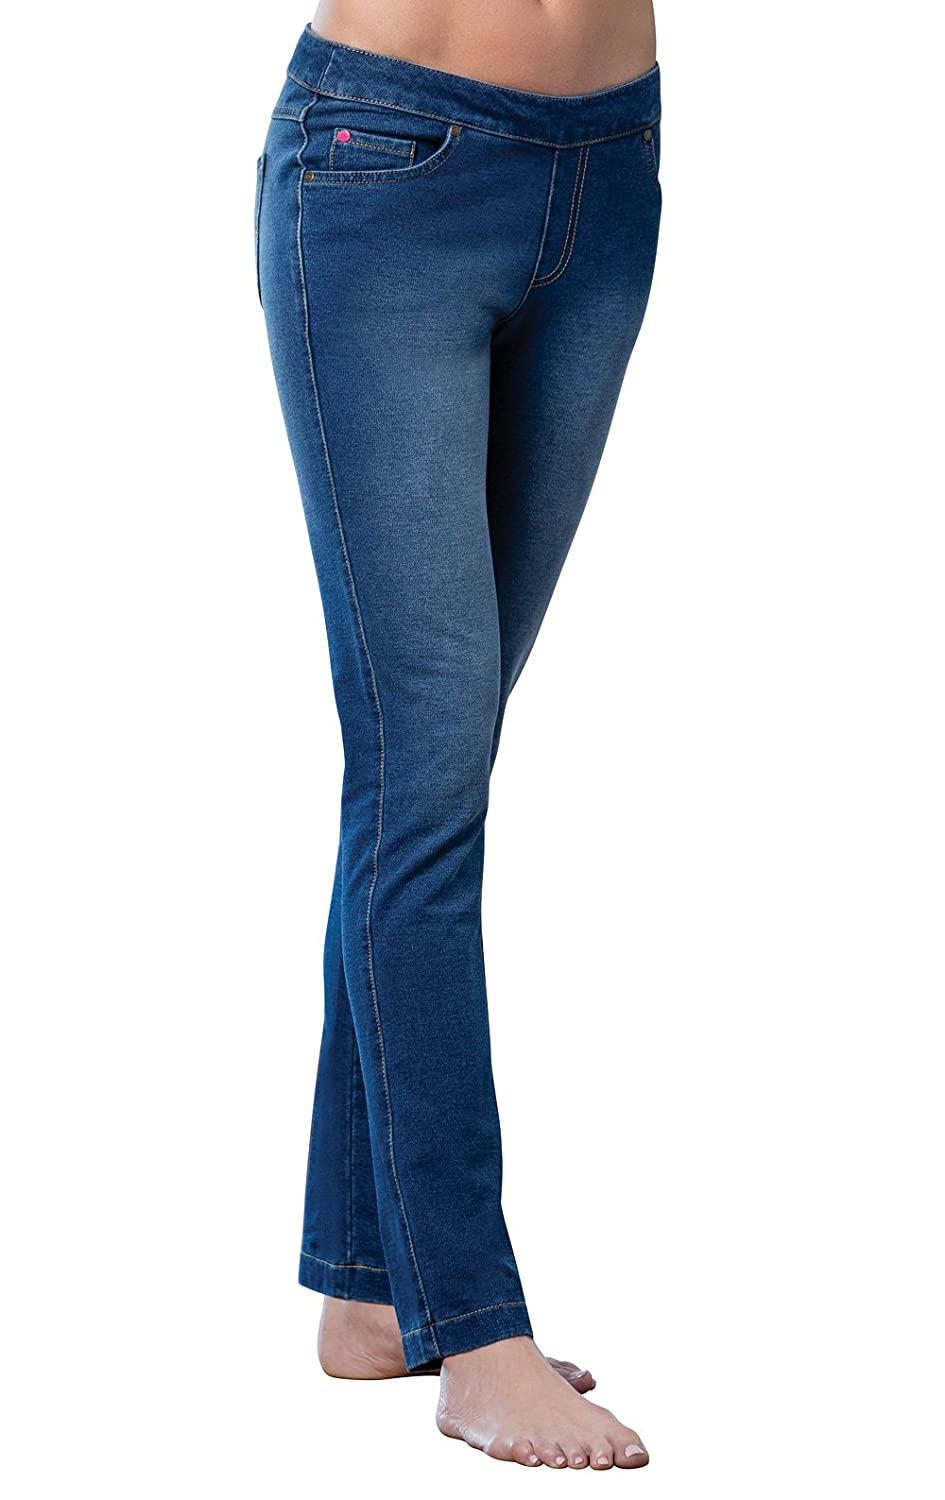 PajamaJeans - Petite Skinny Stretch Knit Jeans for Women The PajamaJeans Company GAMV04760